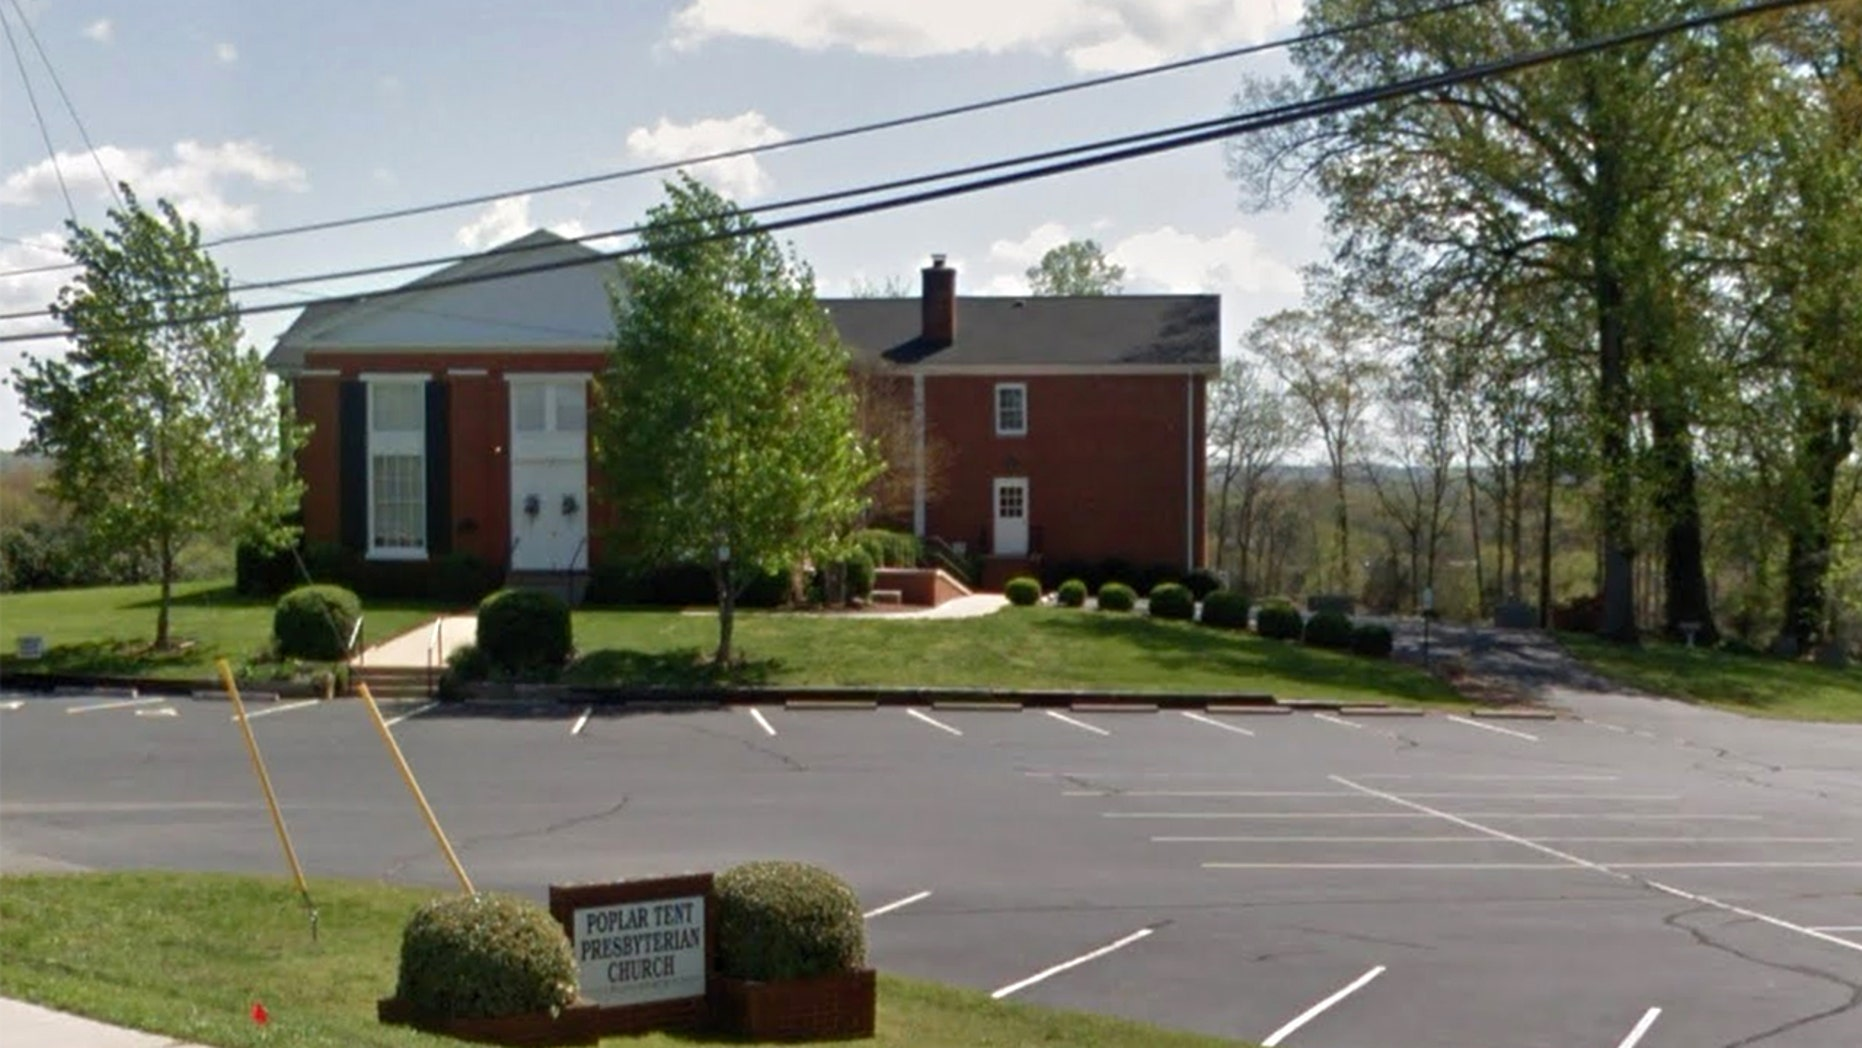 Poplar Tent Presbyterian Church in Kannapolis North Carolina. & NC church barbecue cited as link to outbreak that sickened 300 | Fox ...